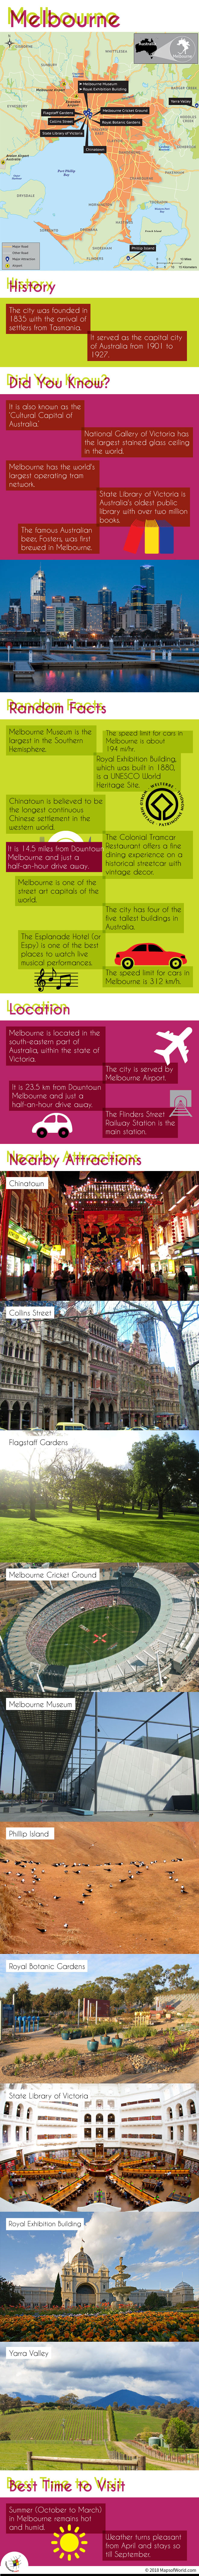 Infographic Depicting Melbourne Tourist Attractions